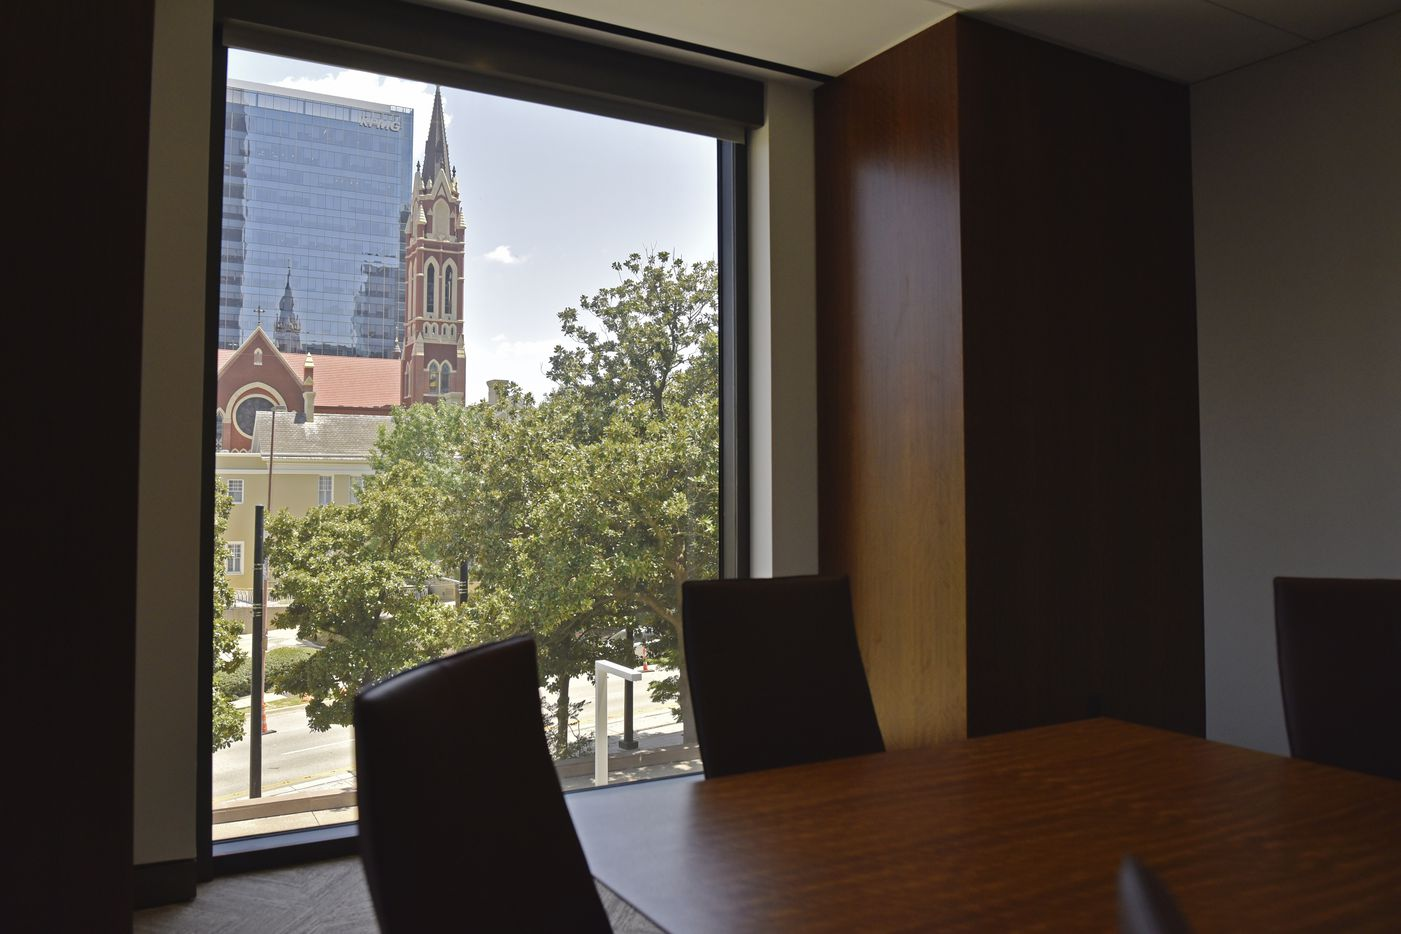 A meeting room with a view of the Catholic Cathedral inside the newly updated Trammell Crow Center in downtown Dallas.